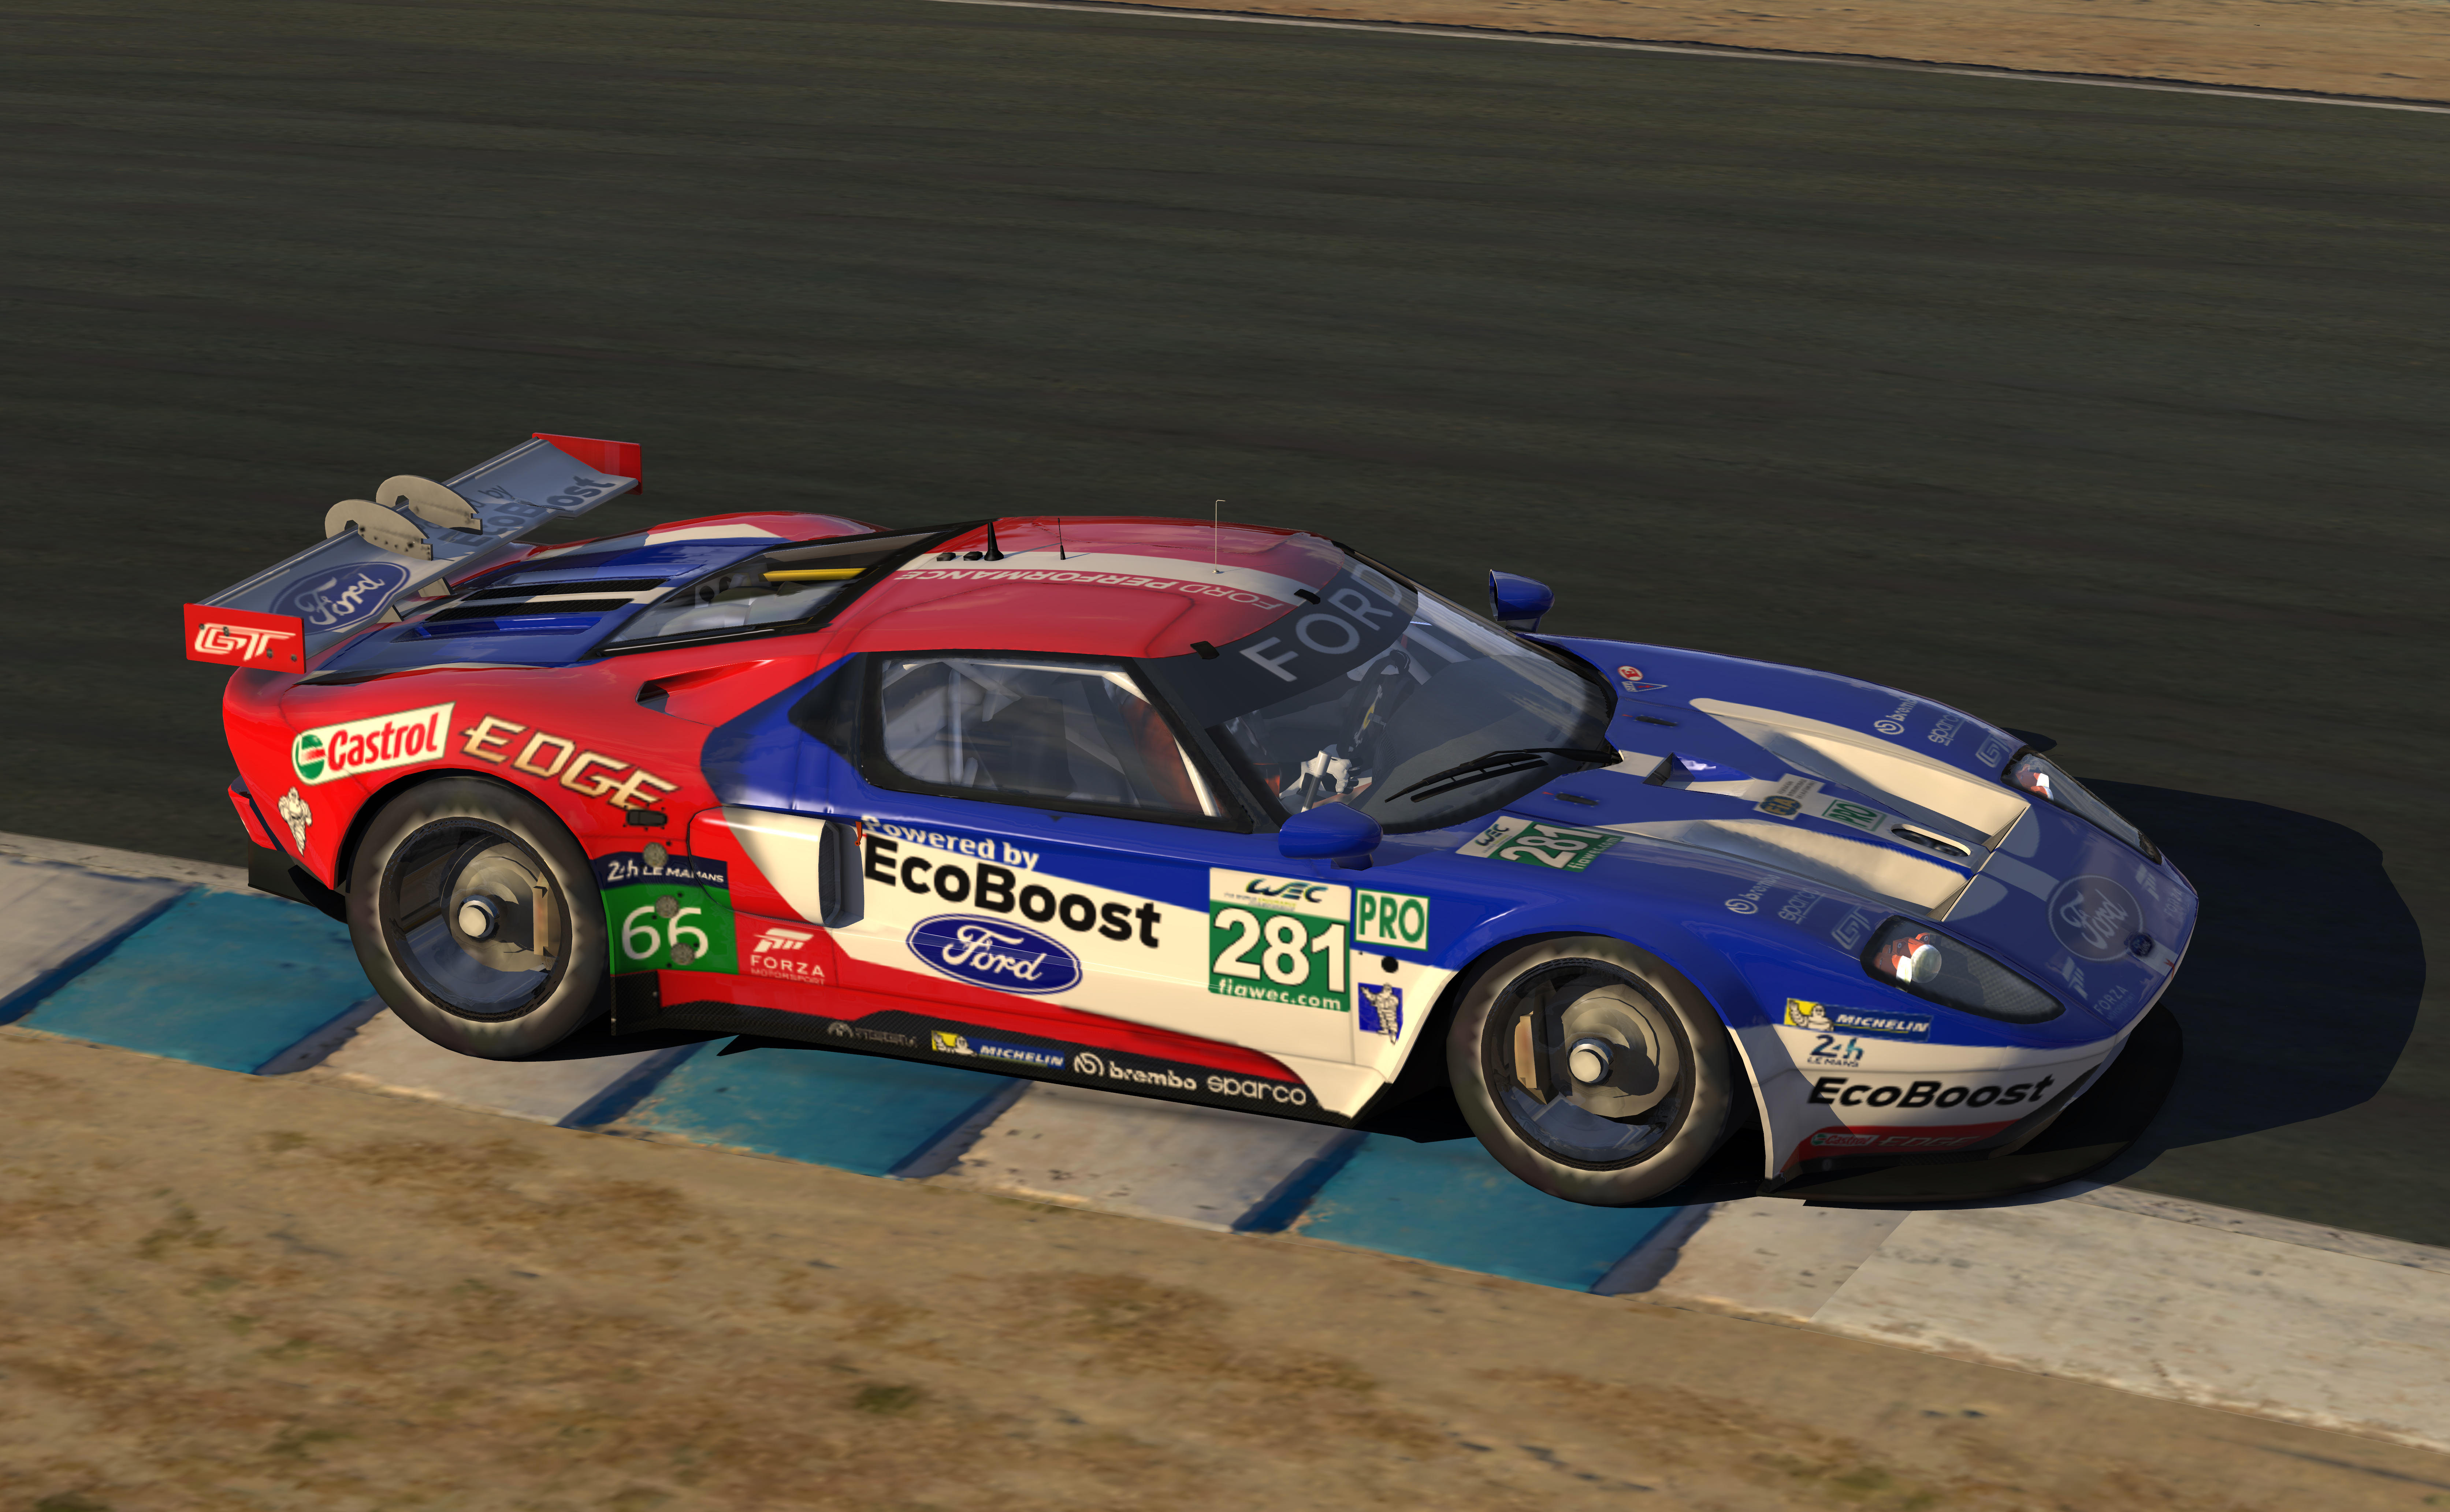 2016 ford gt le mans pro livery by warren mcgary trading paints. Black Bedroom Furniture Sets. Home Design Ideas